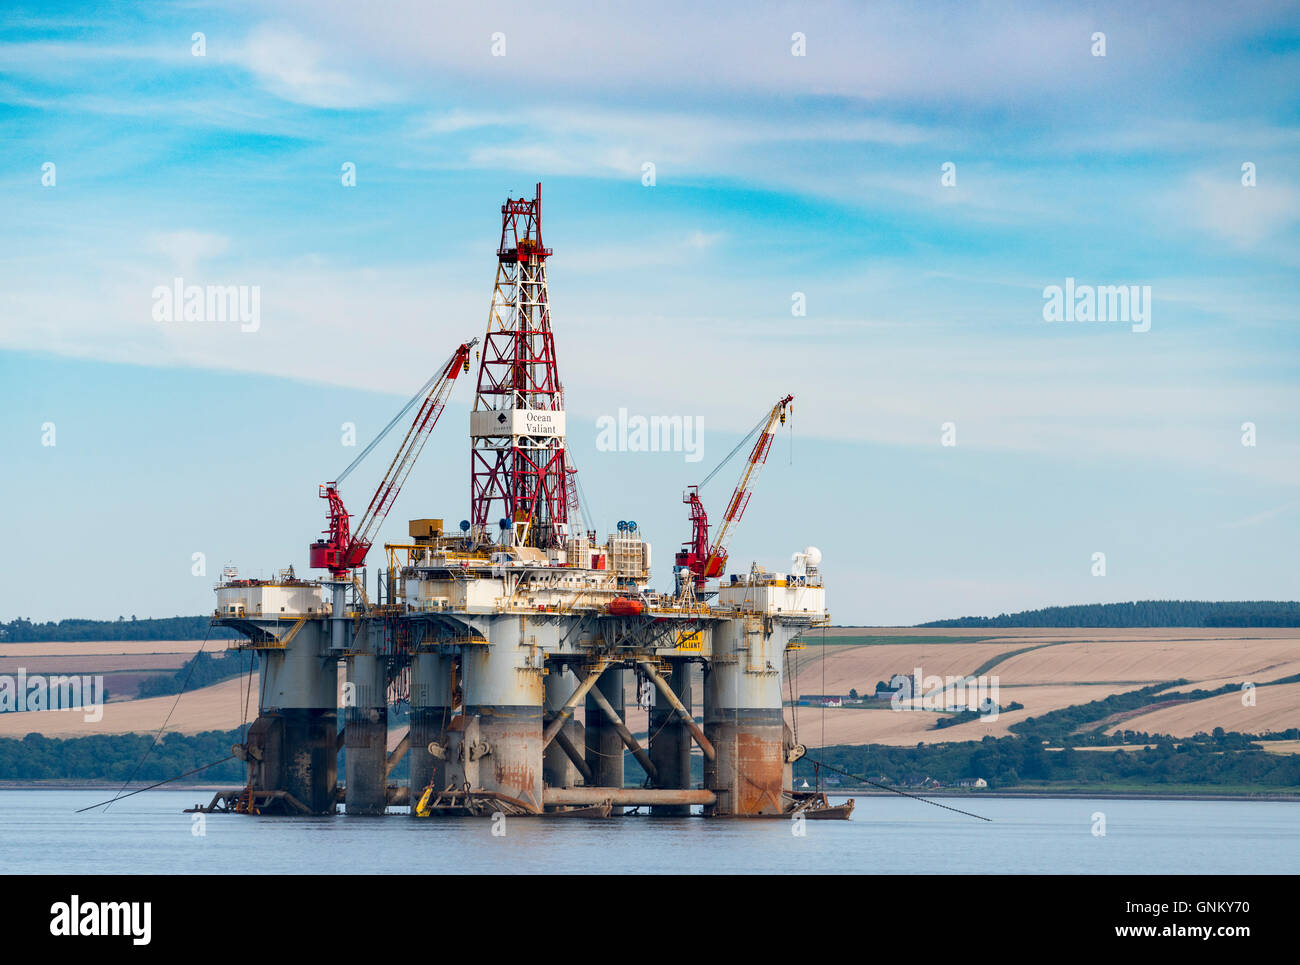 Oil rig/ drilling platform moored in Cromarty Firth in Ross and Cromarty, Highland, Scotland, United Kingdom - Stock Image